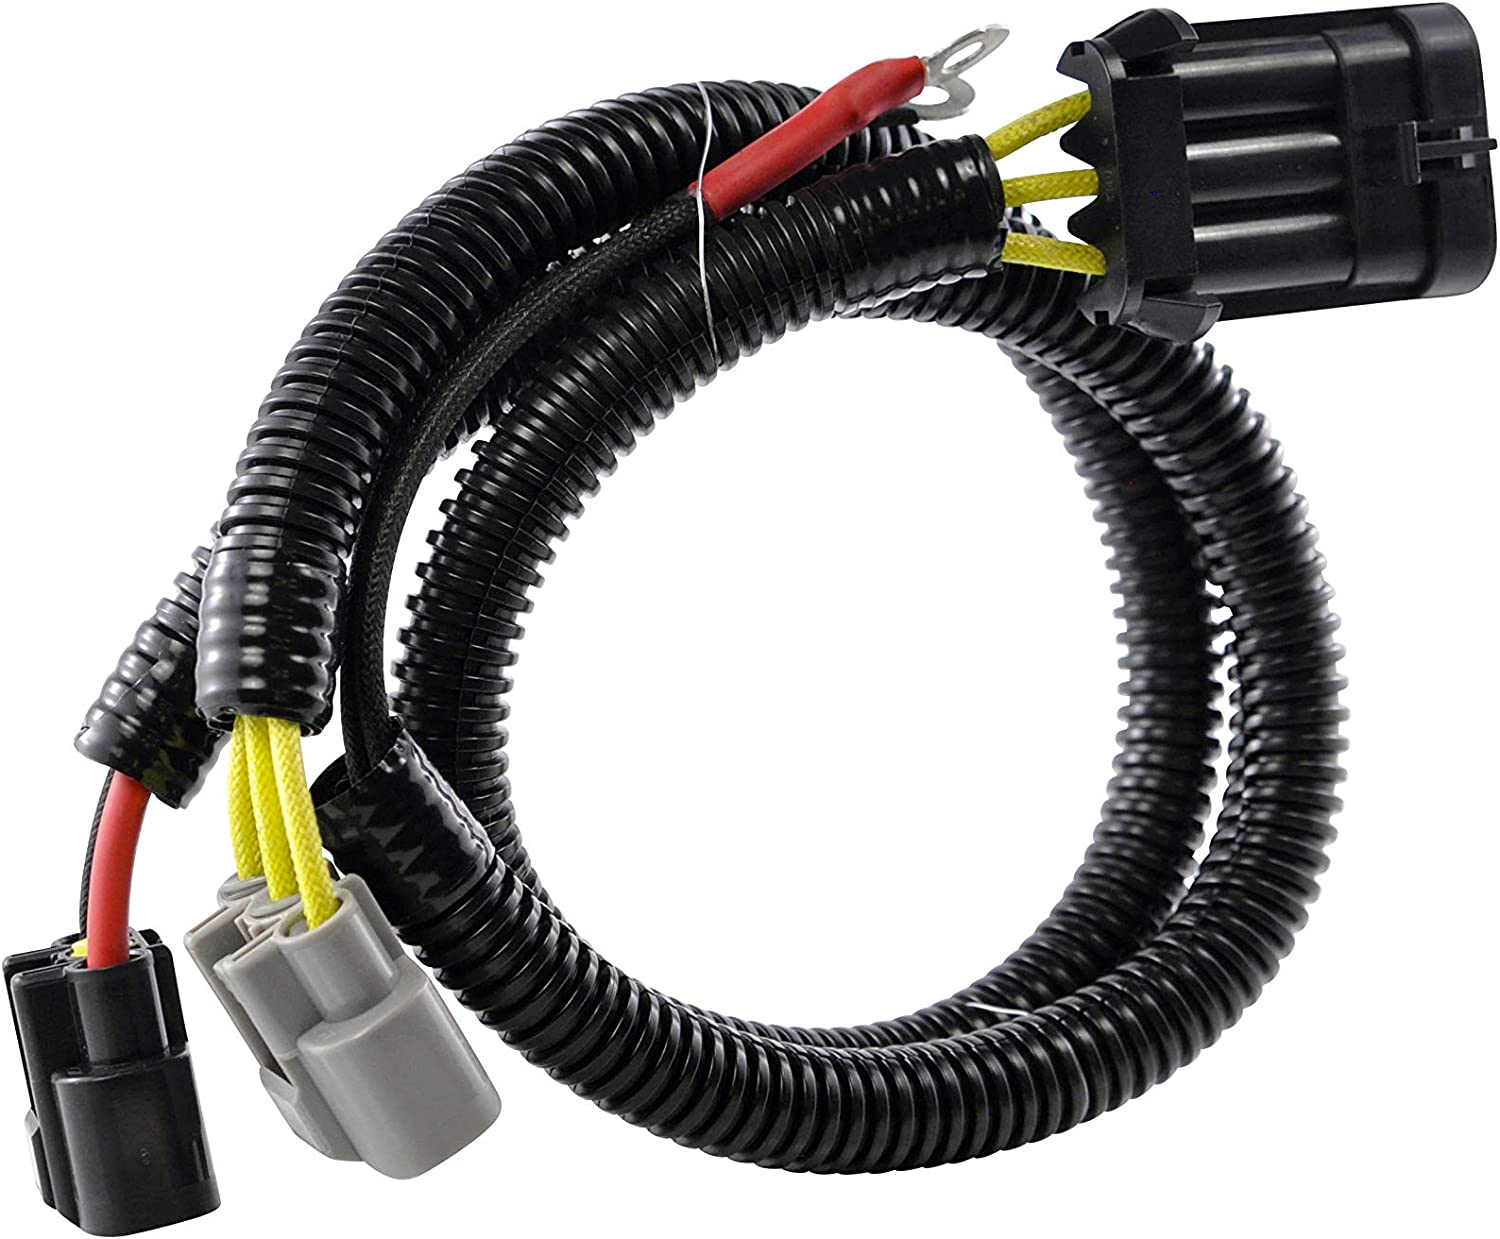 4015229//4016868 General 1000 ACE 325 570 2012-2018 OEM Repl.# 2206367//4013904 4014029//4014856 Conversion Harness for Polaris Recall Ranger//RZR 570 900 1000